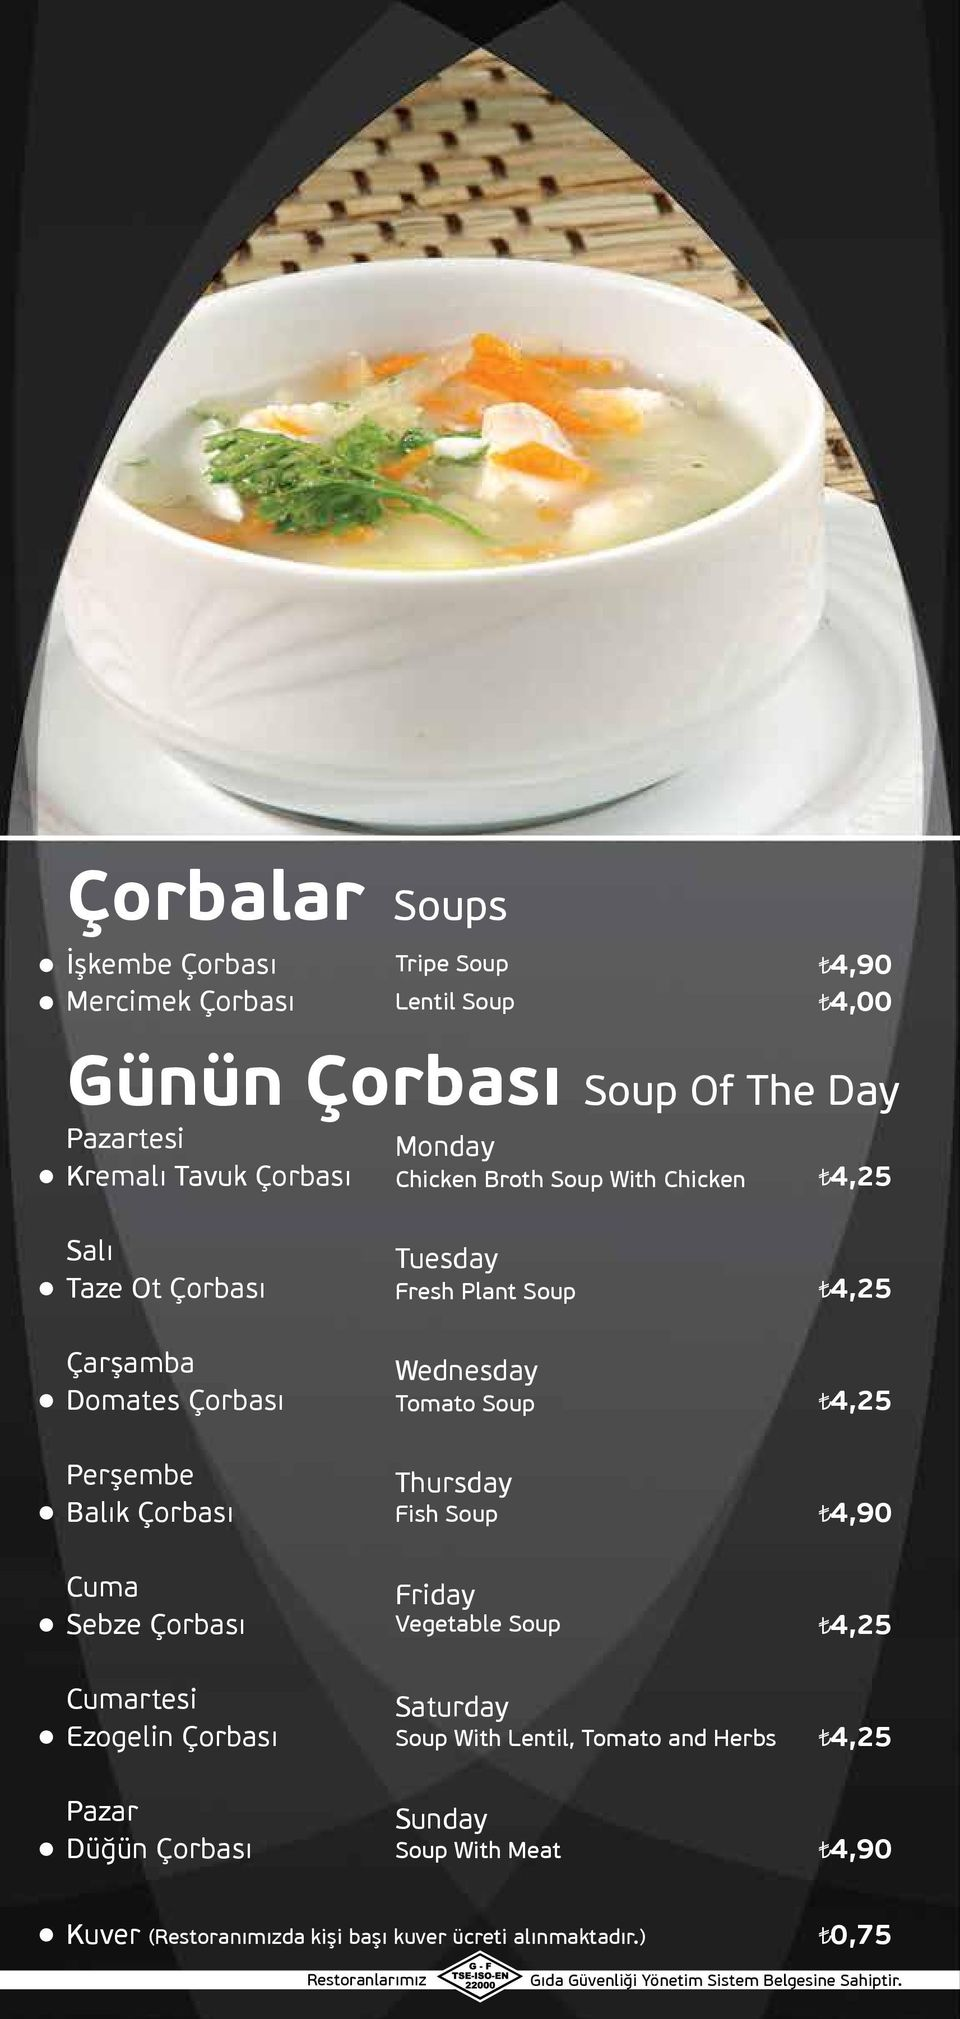 Soup Perşembe Balık Çorbası Thursday Fish Soup 4,90 Cuma Sebze Çorbası Friday Vegetable Soup Cumartesi Ezogelin Çorbası Saturday Soup